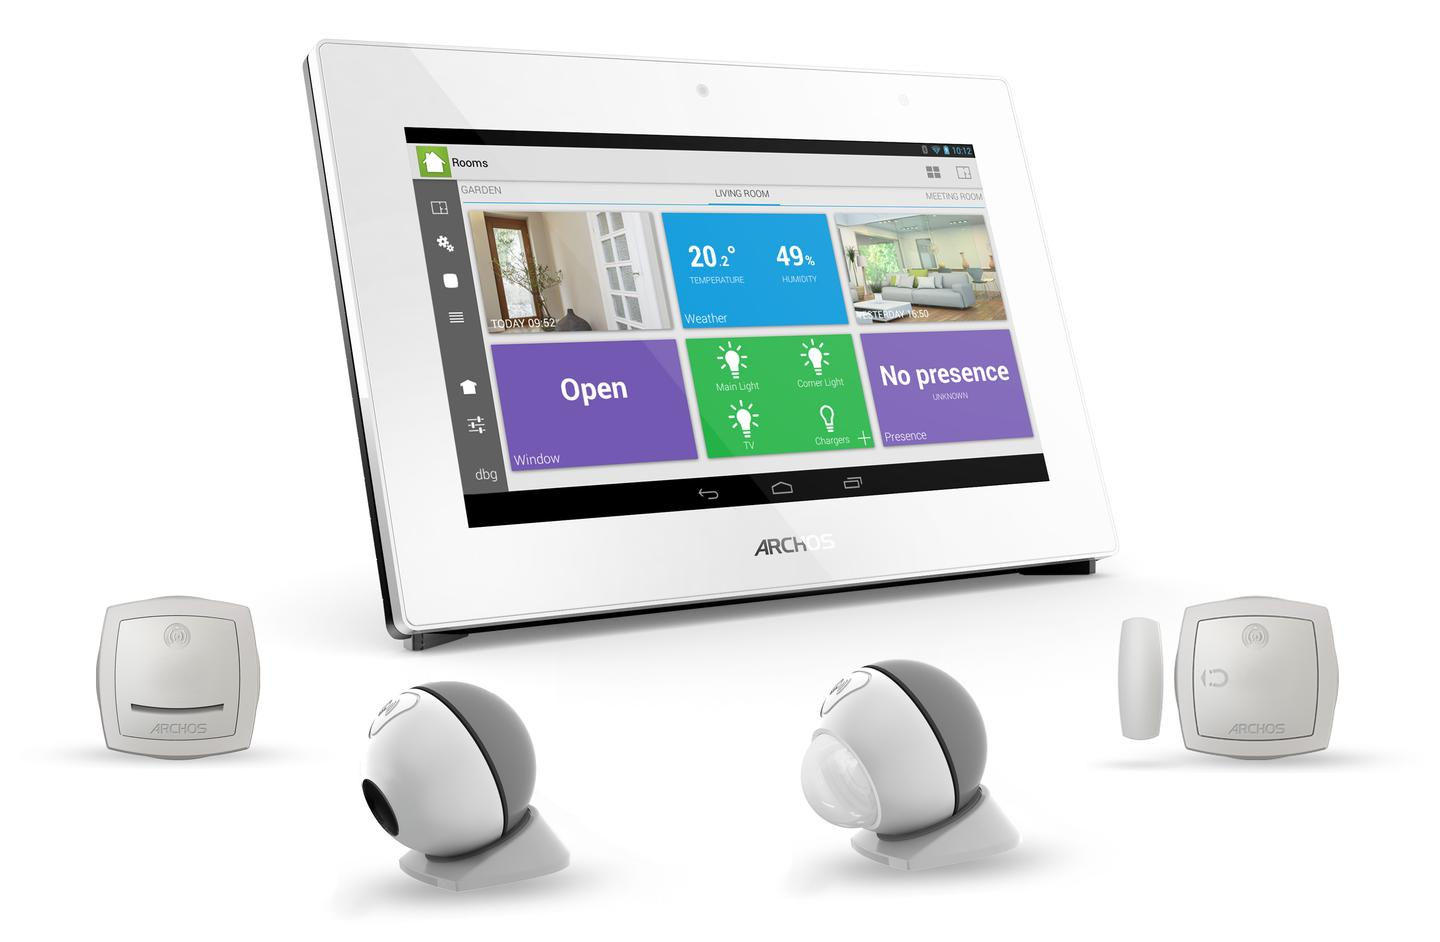 The Smart Home tablet and connected objects